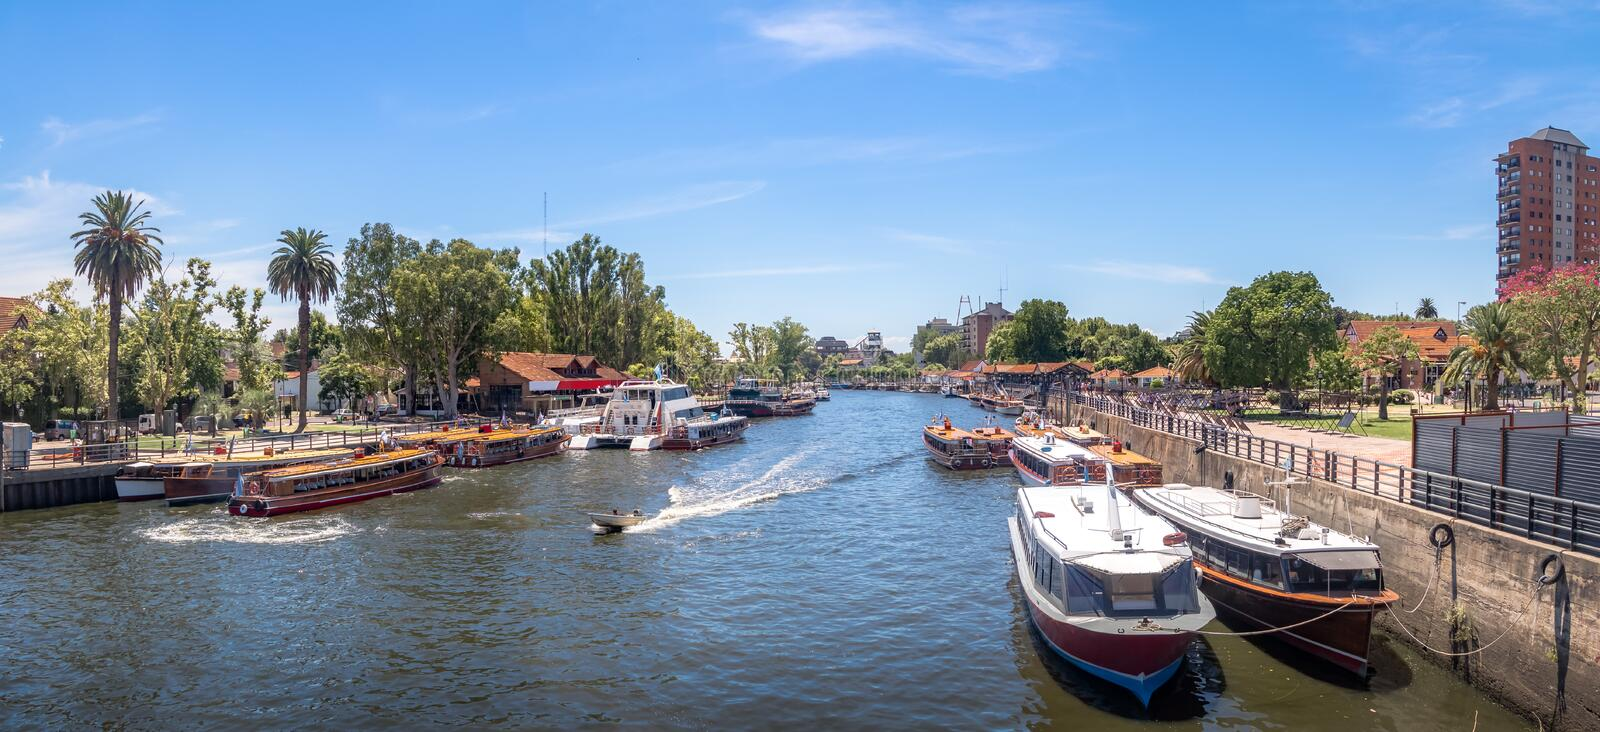 Panoramic view of Boats at Tigre River - Tigre, Buenos Aires, Argentina. Panoramic view of Boats at Tigre River in Tigre, Buenos Aires, Argentina royalty free stock photos